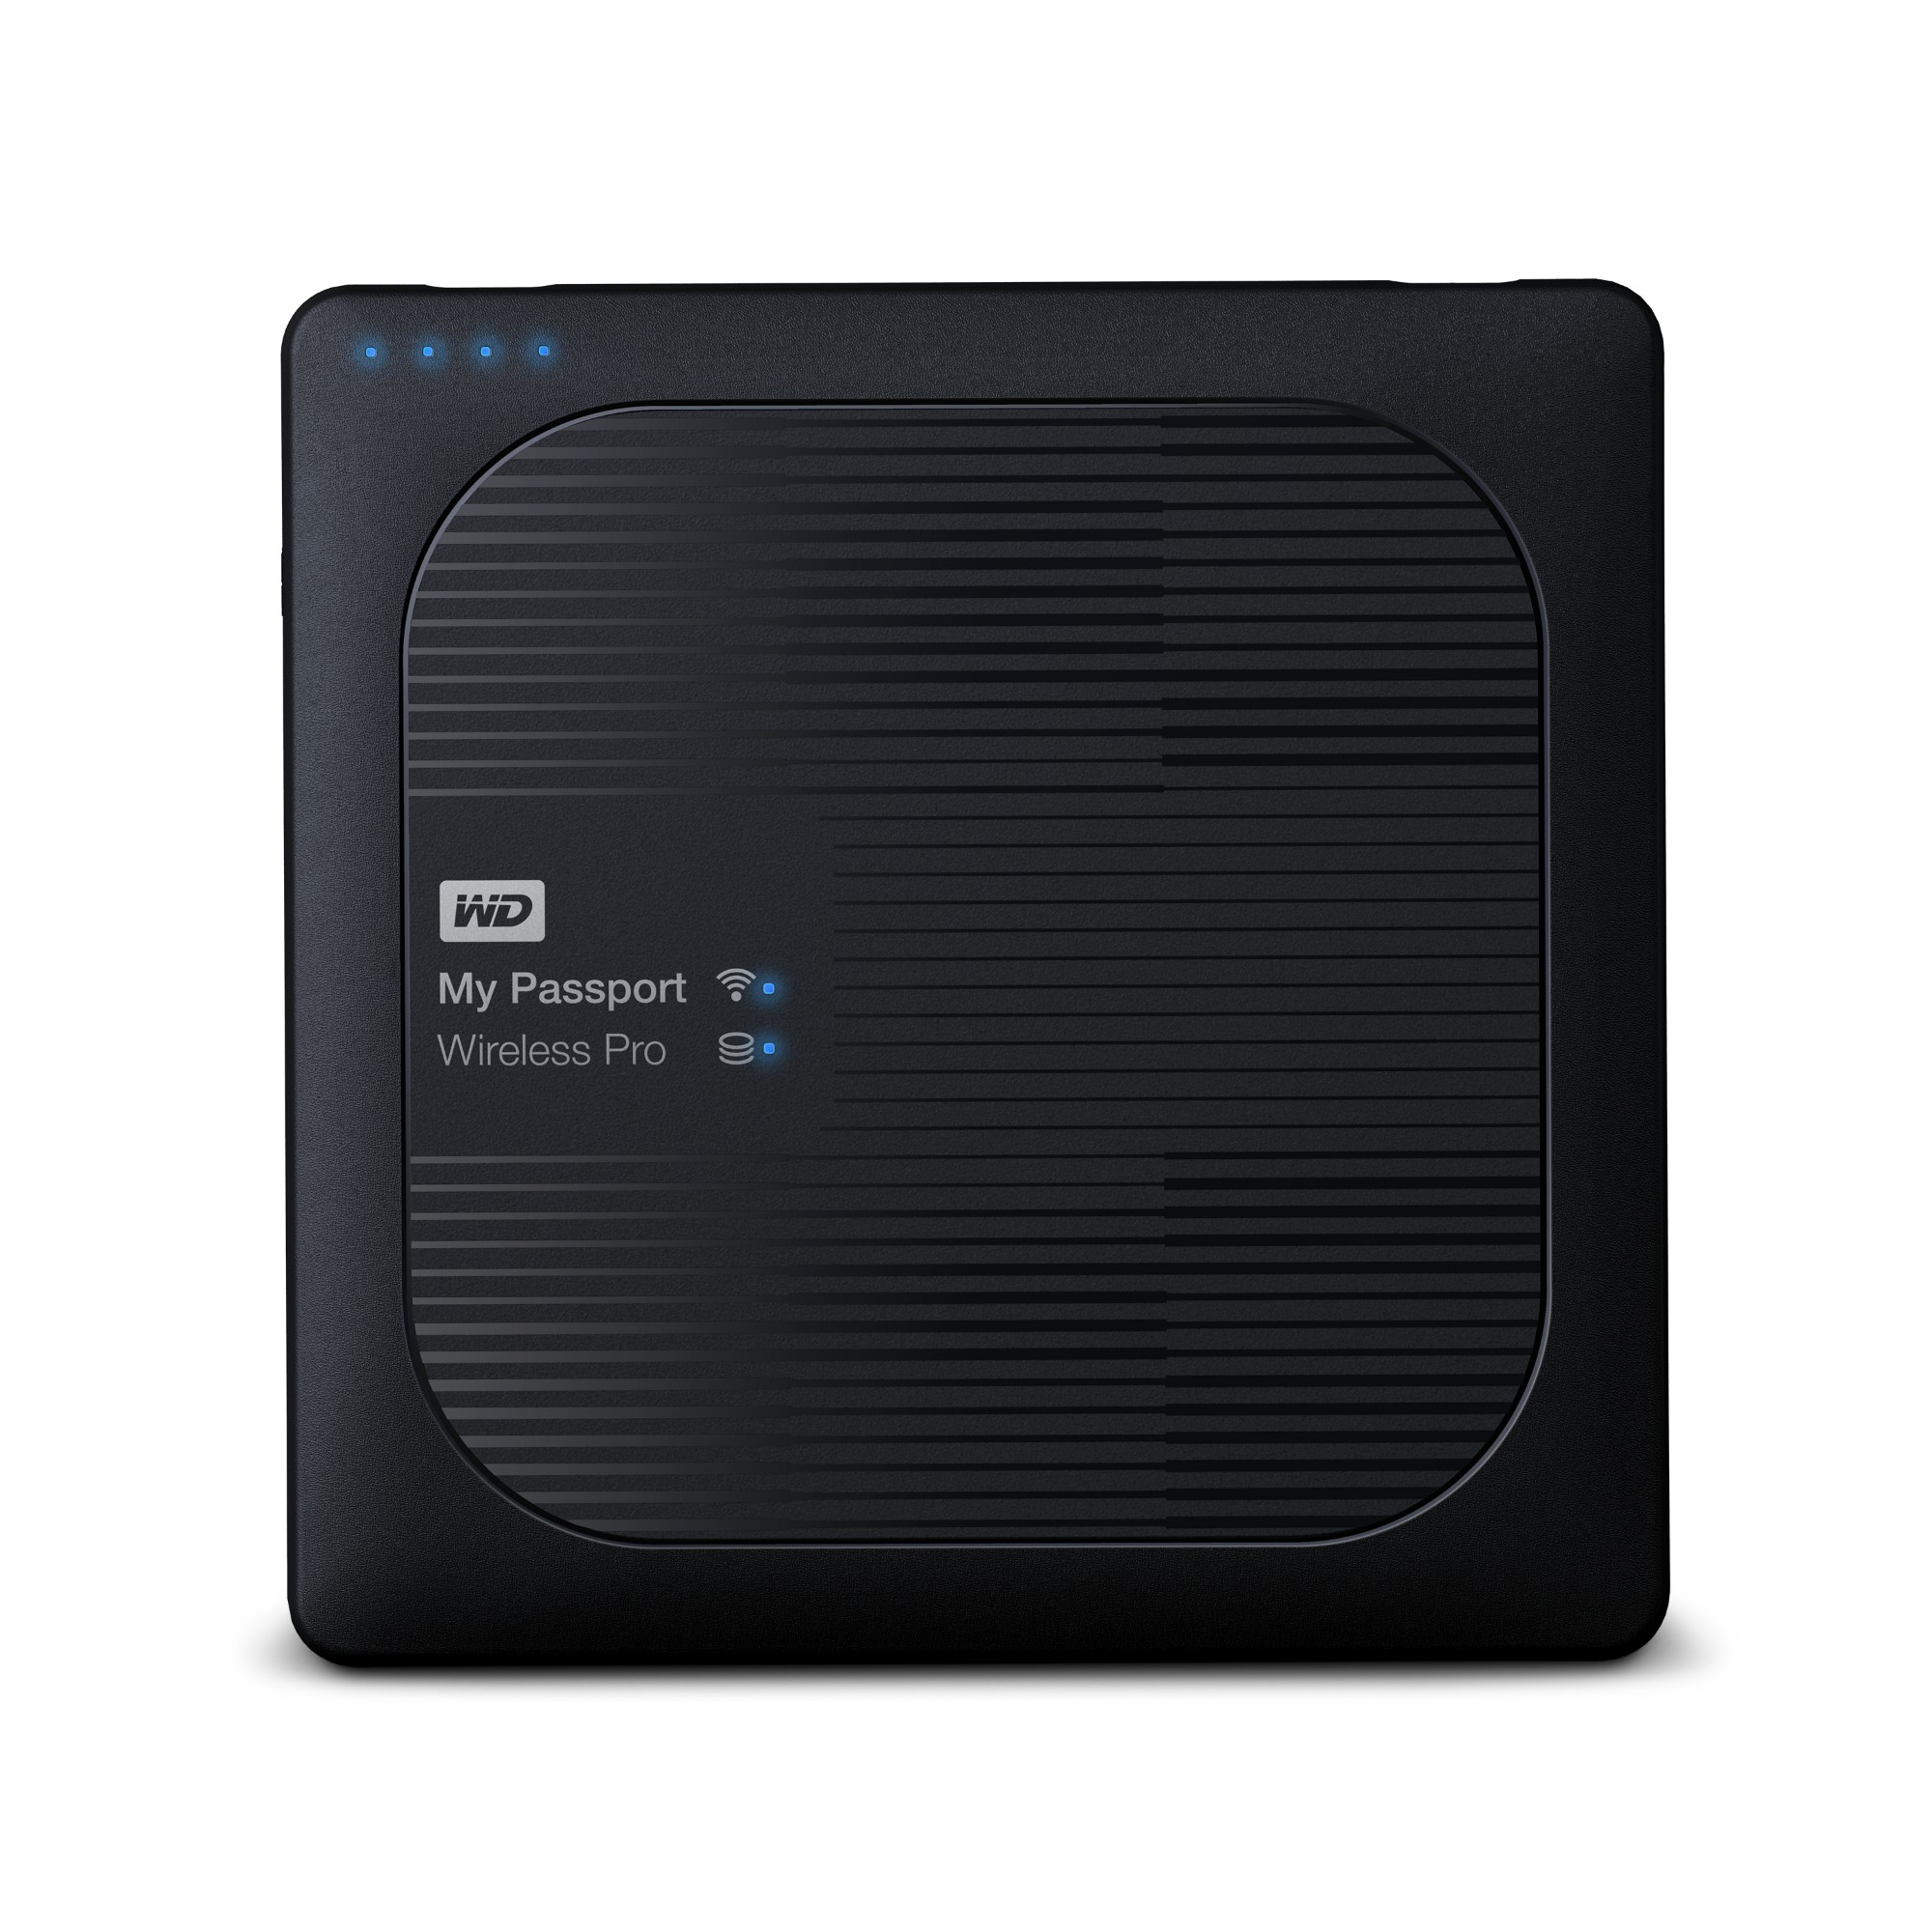 My Passport Wireless Pro Wi-Fi SD card slot USB 3.0 4TB